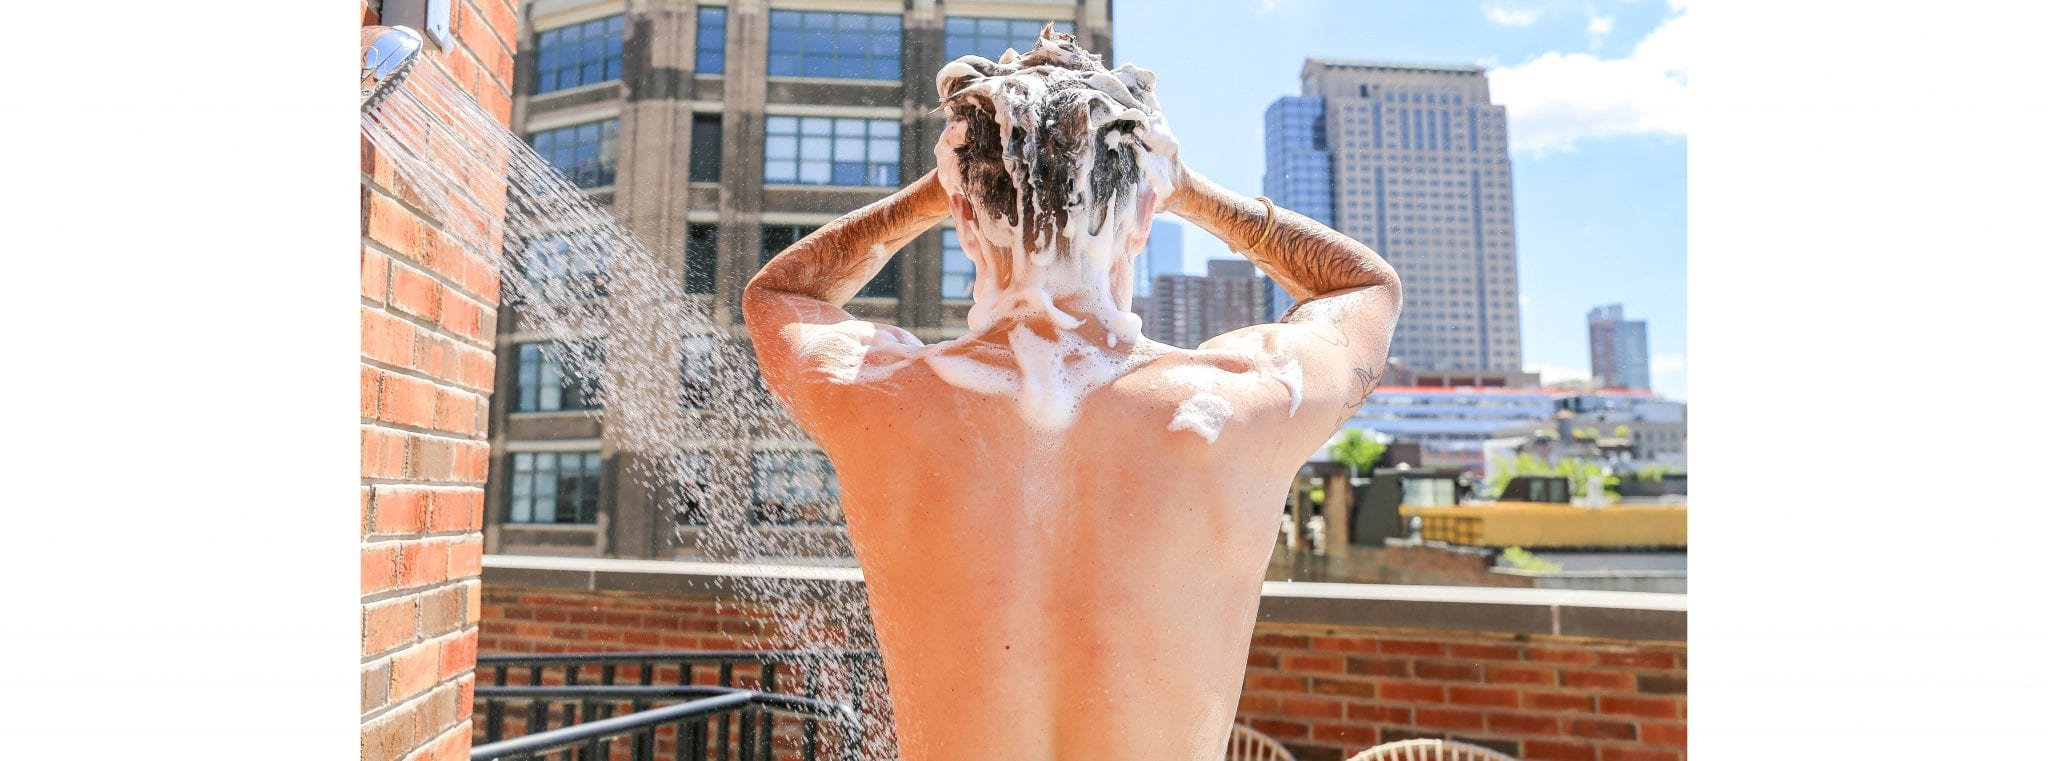 Man showering outdoors on rooftop